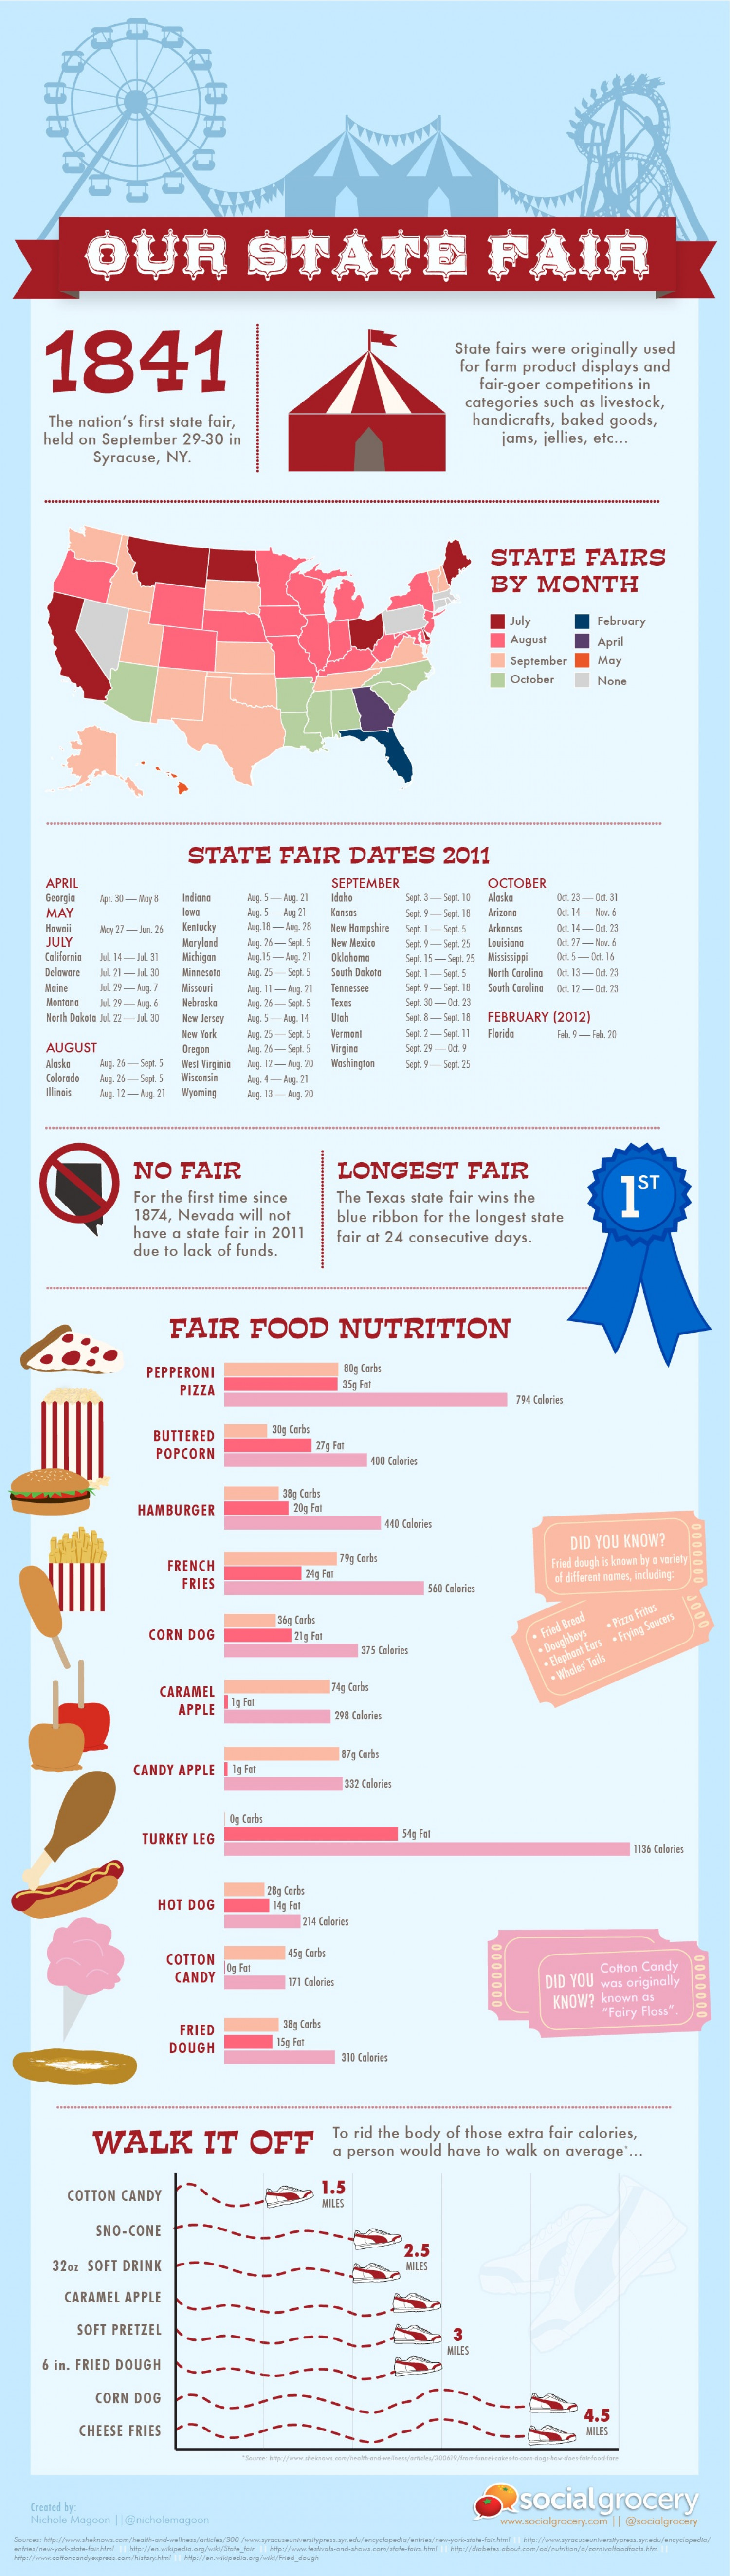 Our State Fair Infographic